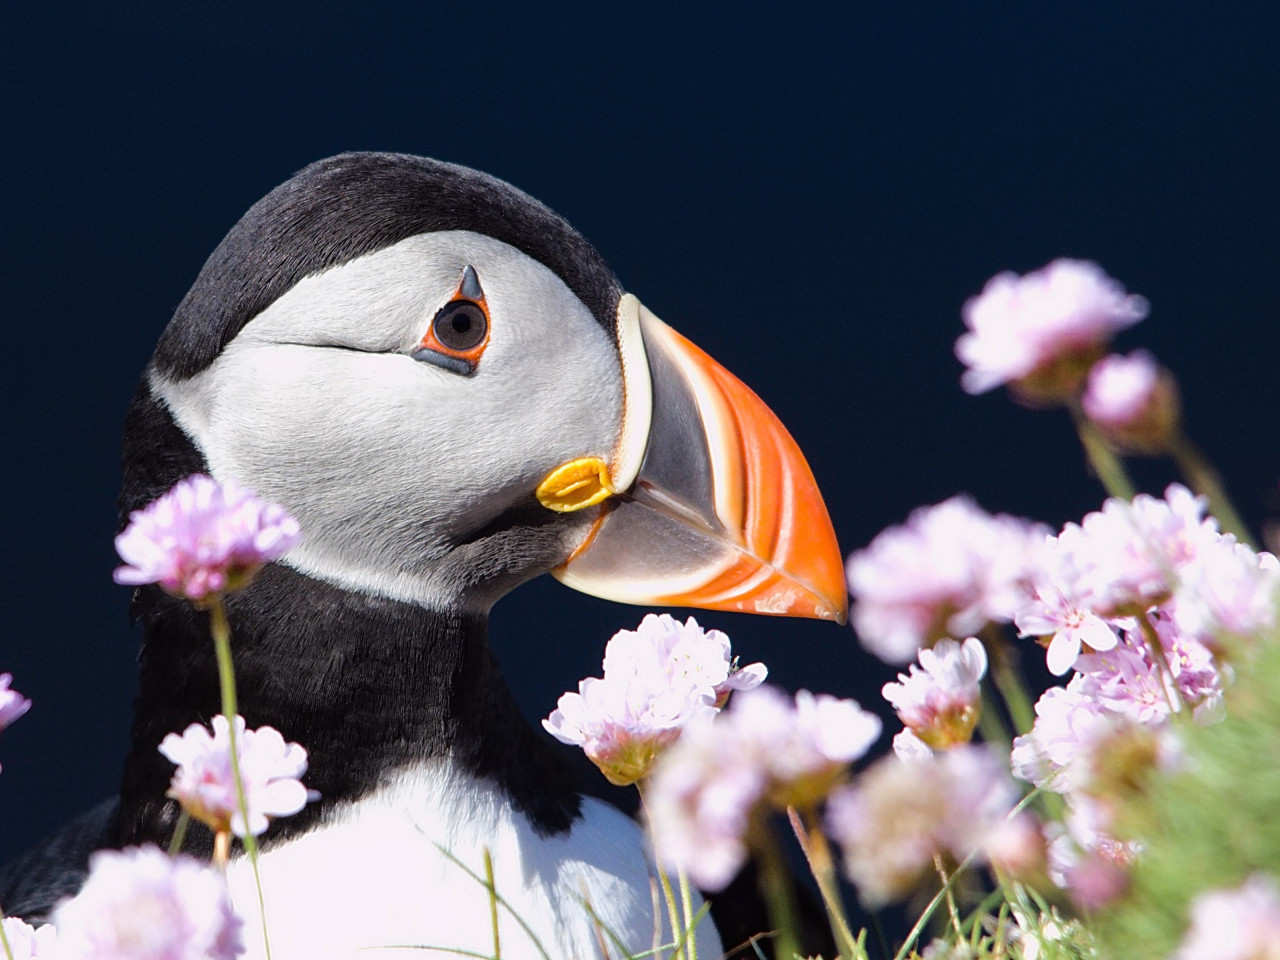 Puffin from Shetland archipelago | 1280x960 wallpaper